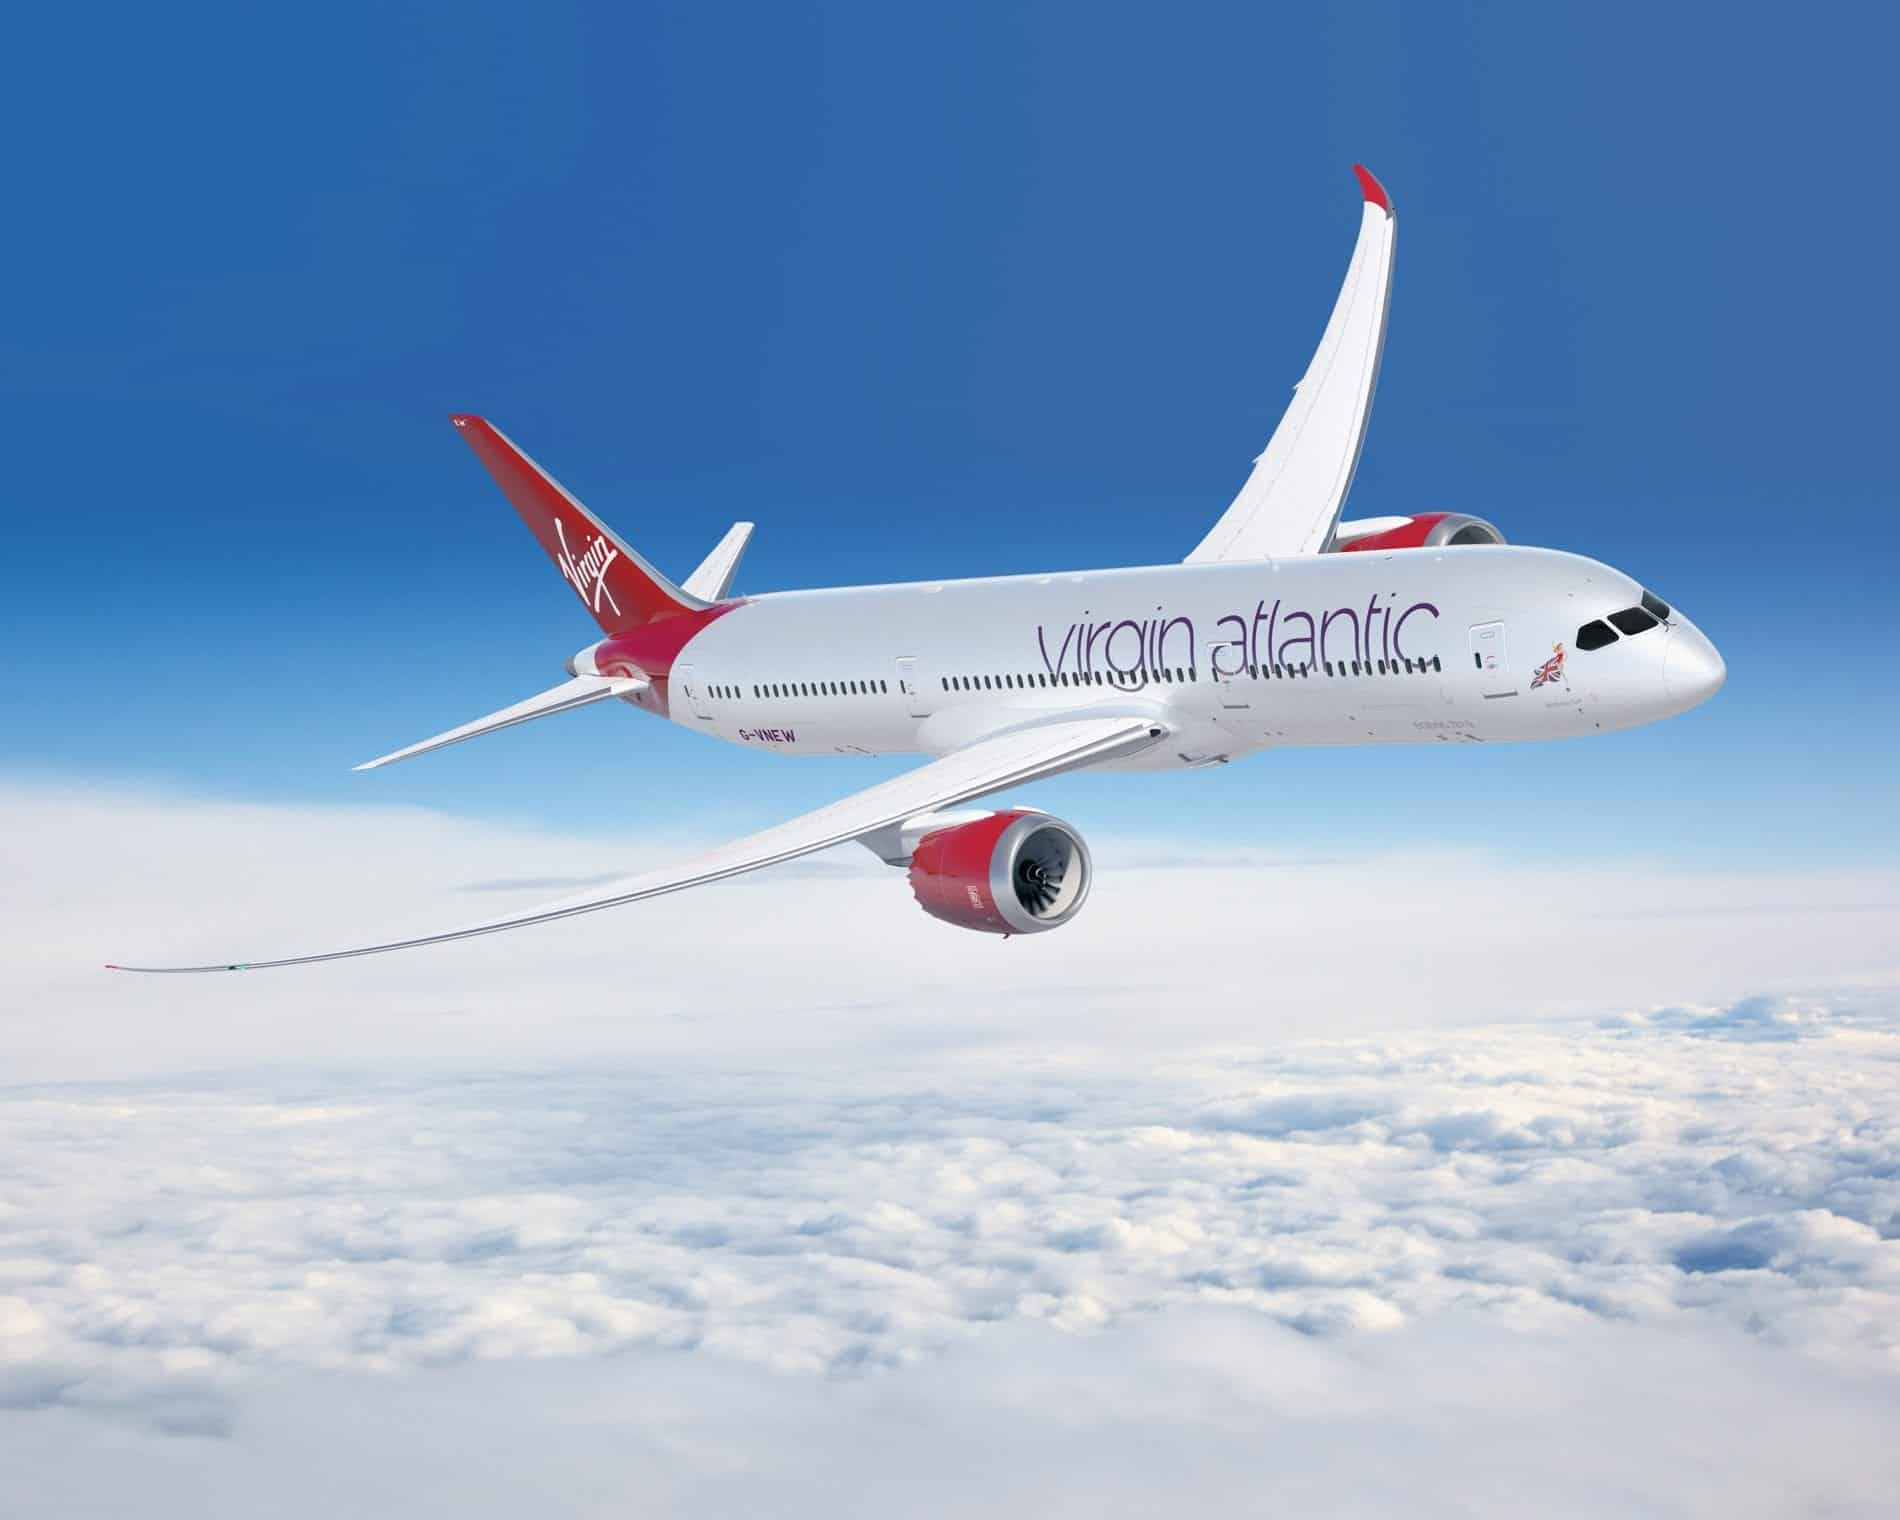 Virgin Atlantic Flight Classes